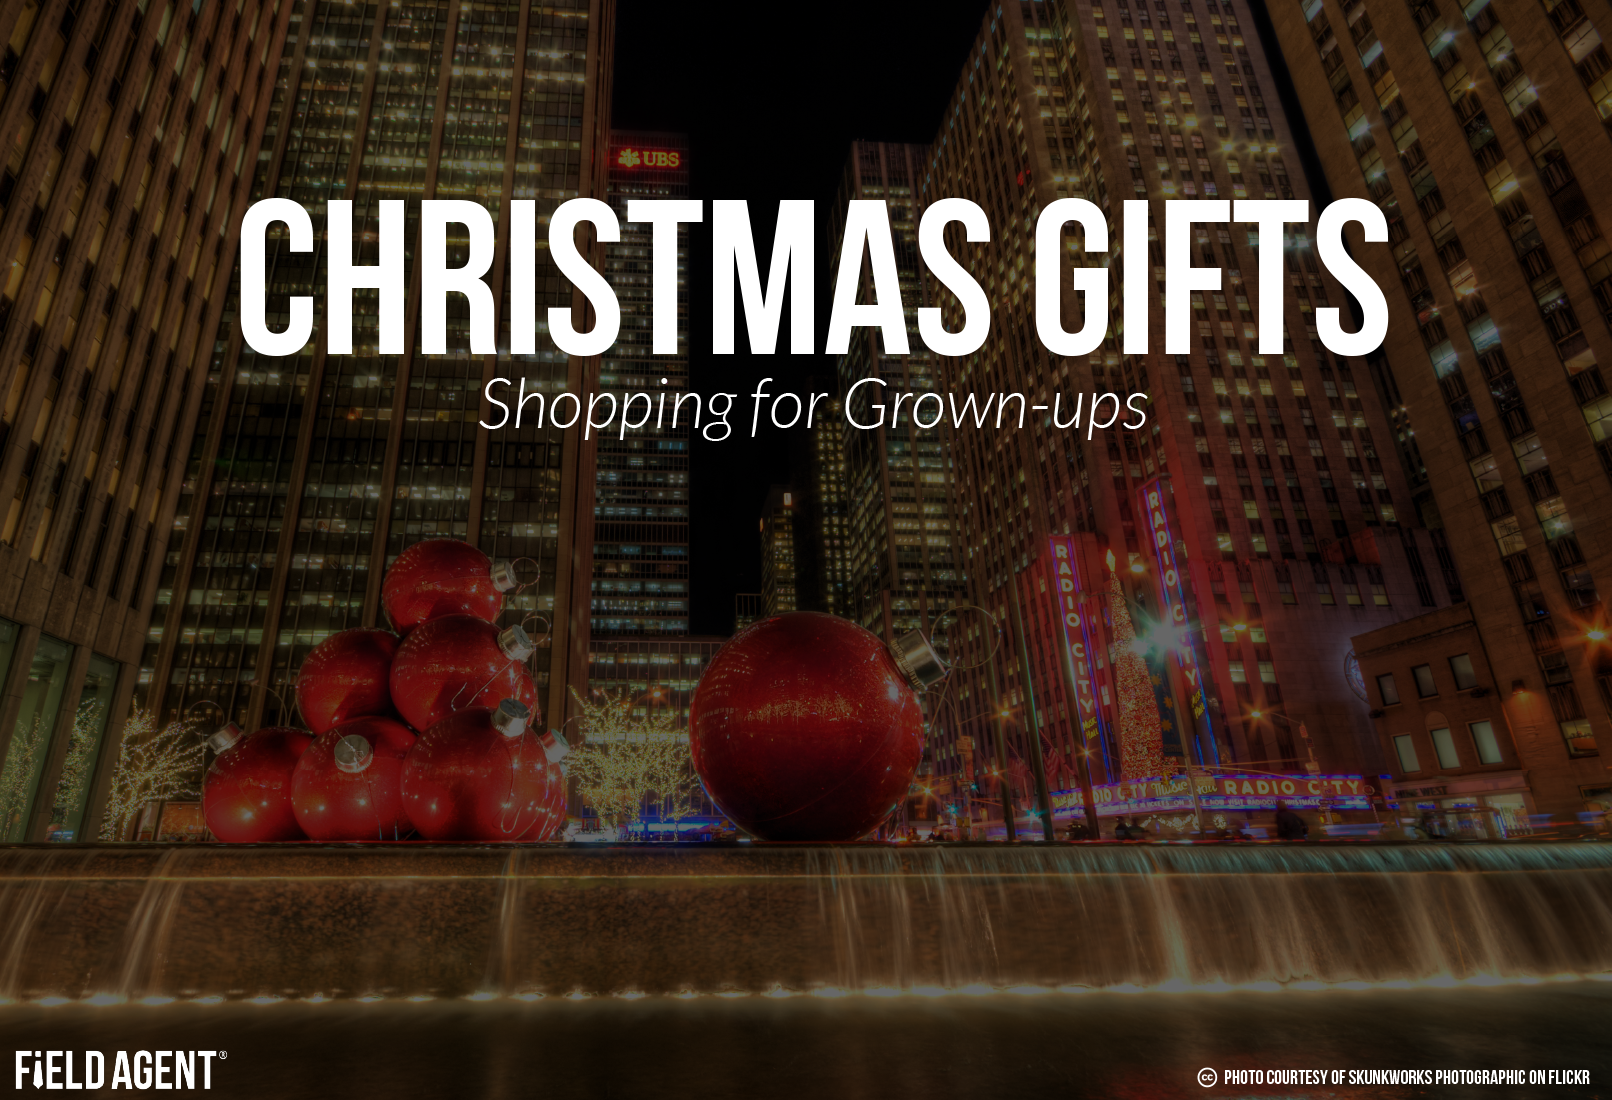 Christmas Gifts: Shopping for Grown-ups